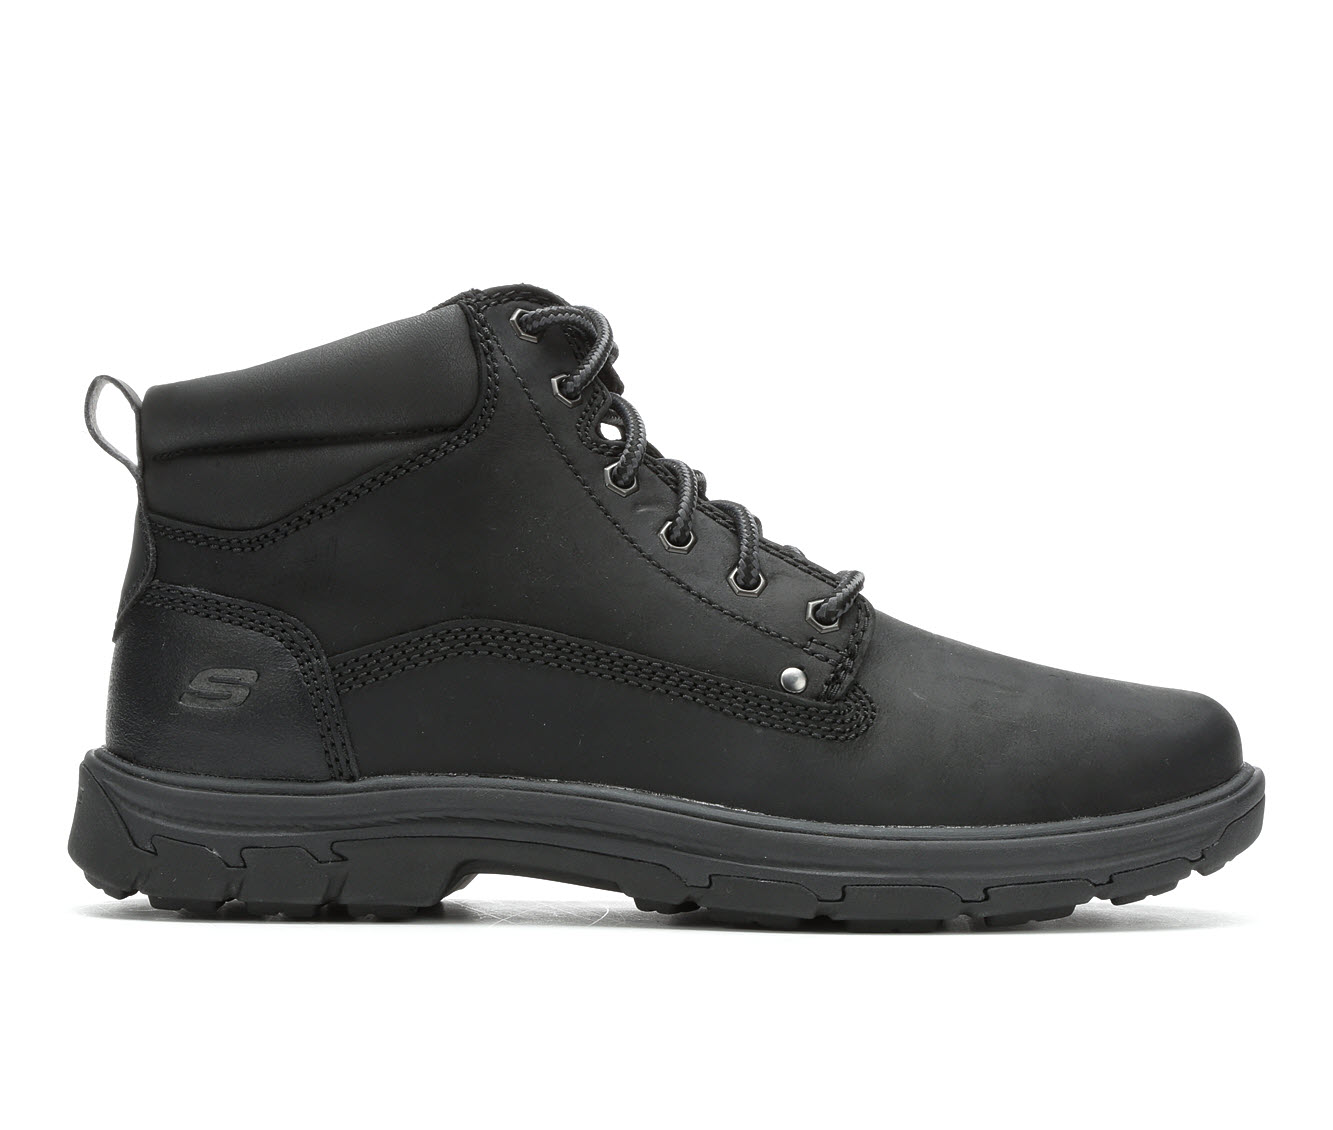 Skechers Garnet 65573 Men's Boots (Black Leather)